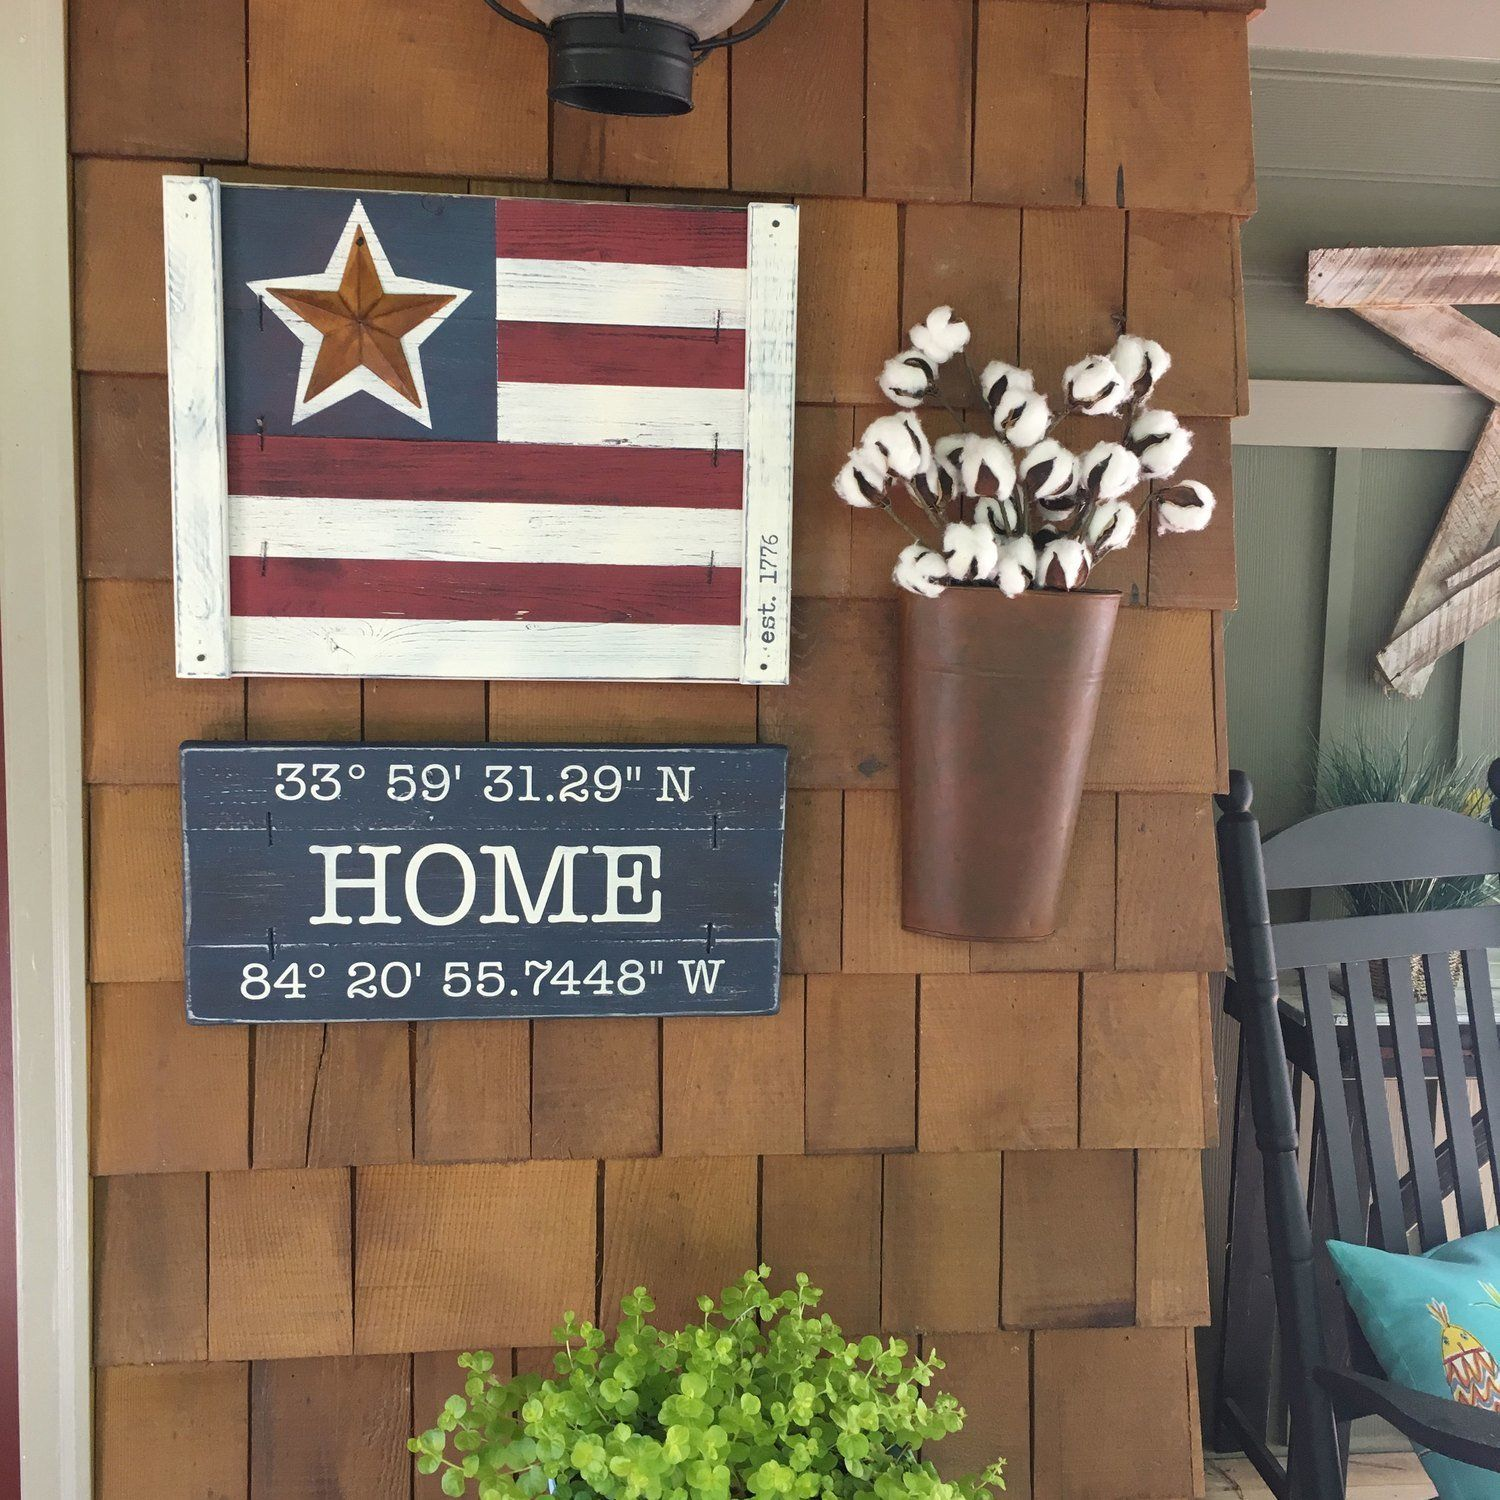 American Flag Wall Art 3 Piece Set This Rustic 3 Piece Wall Decor Set Includes An American F American Flag Decor American Flag Wall Art Rustic Gallery Wall